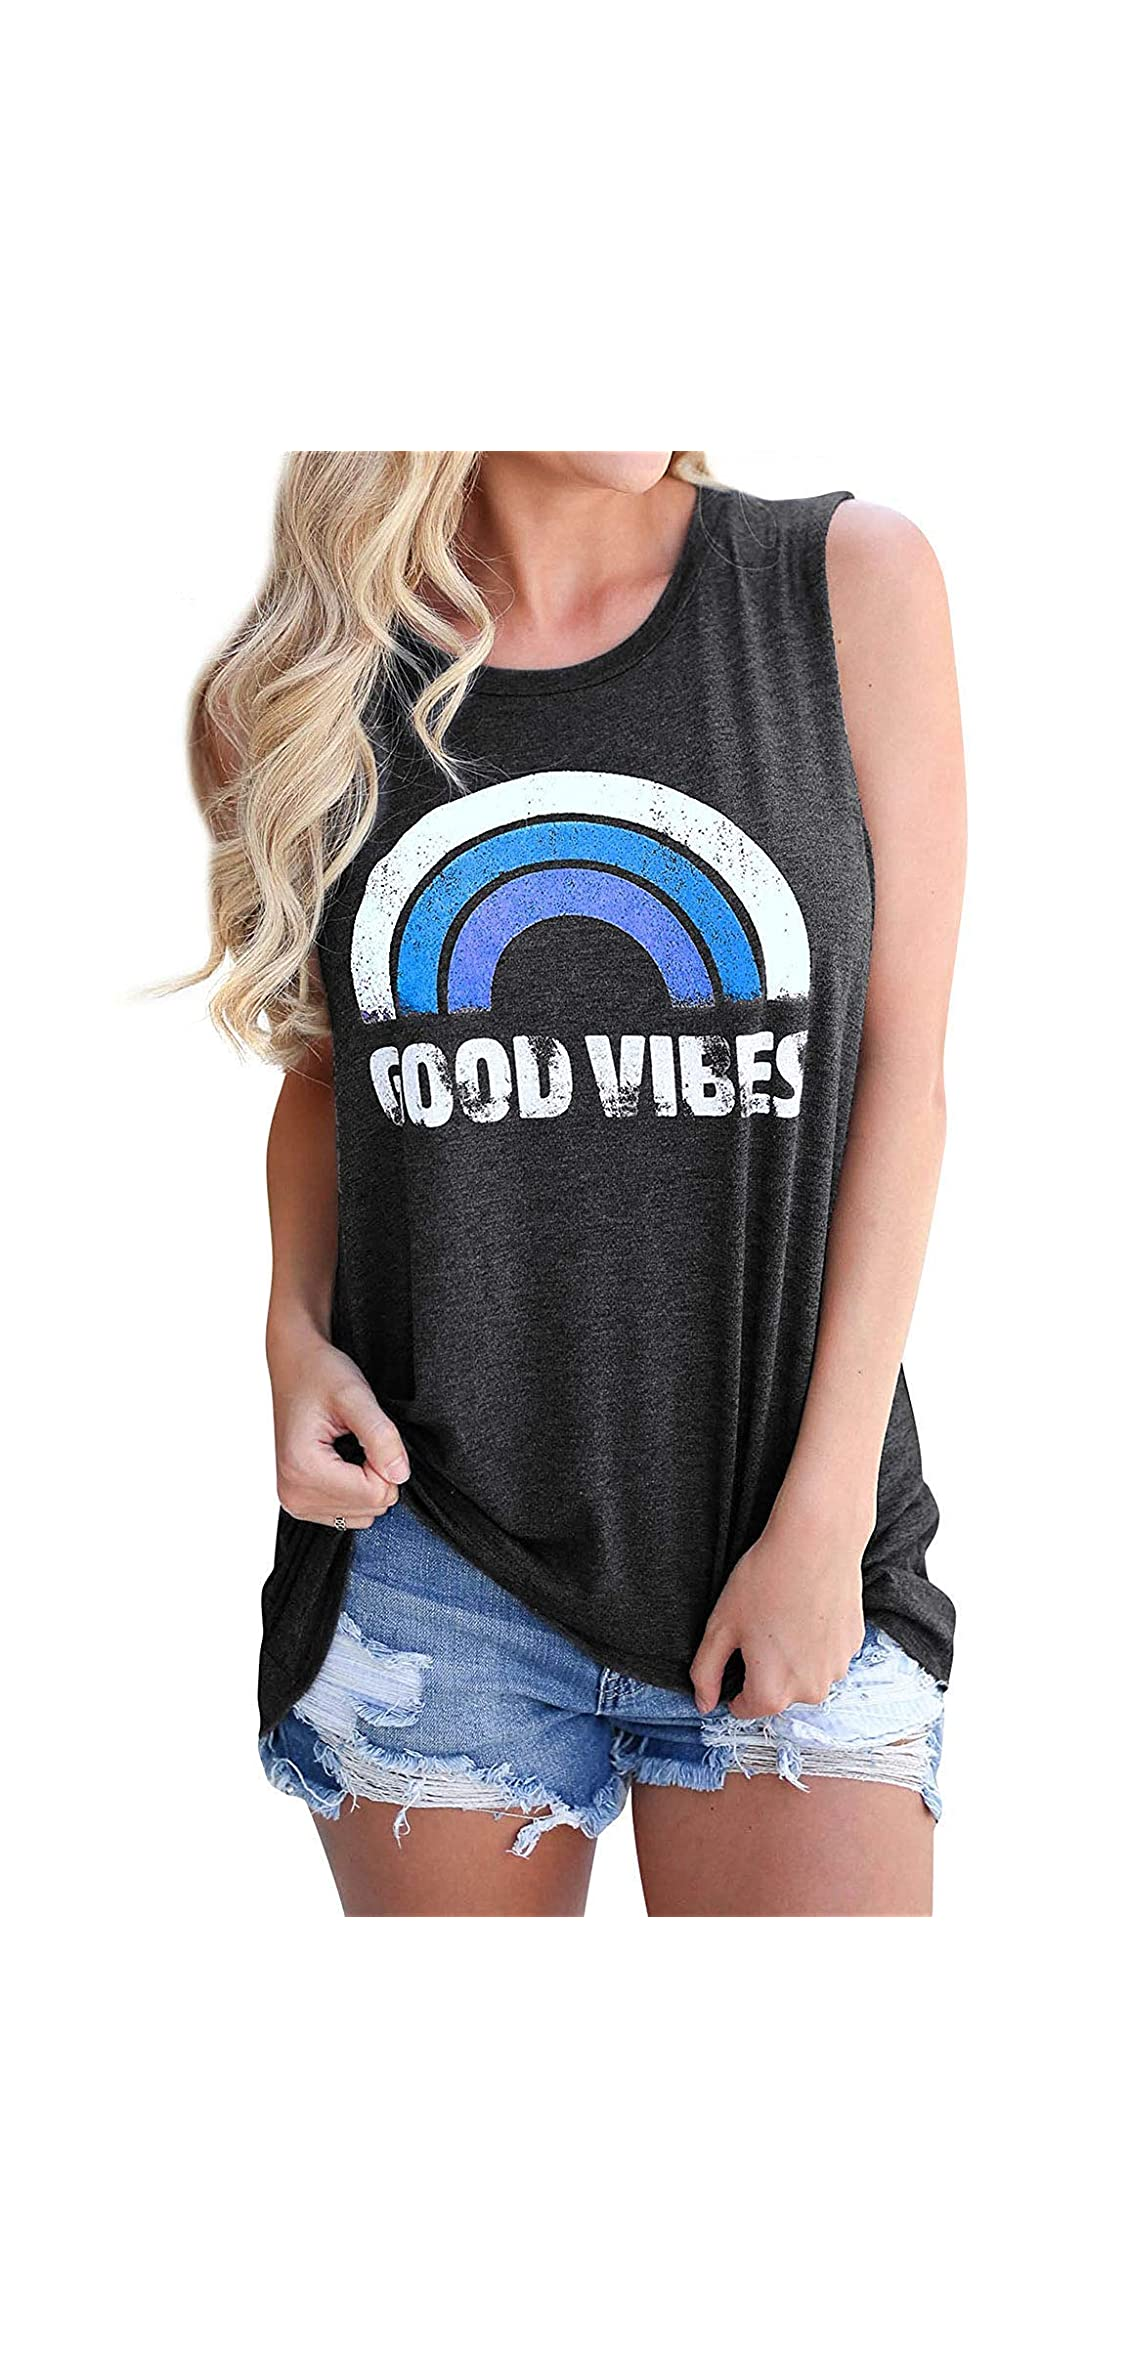 Women's Good Vibes Tank Tops Loose Fit Casual Sleeveless T